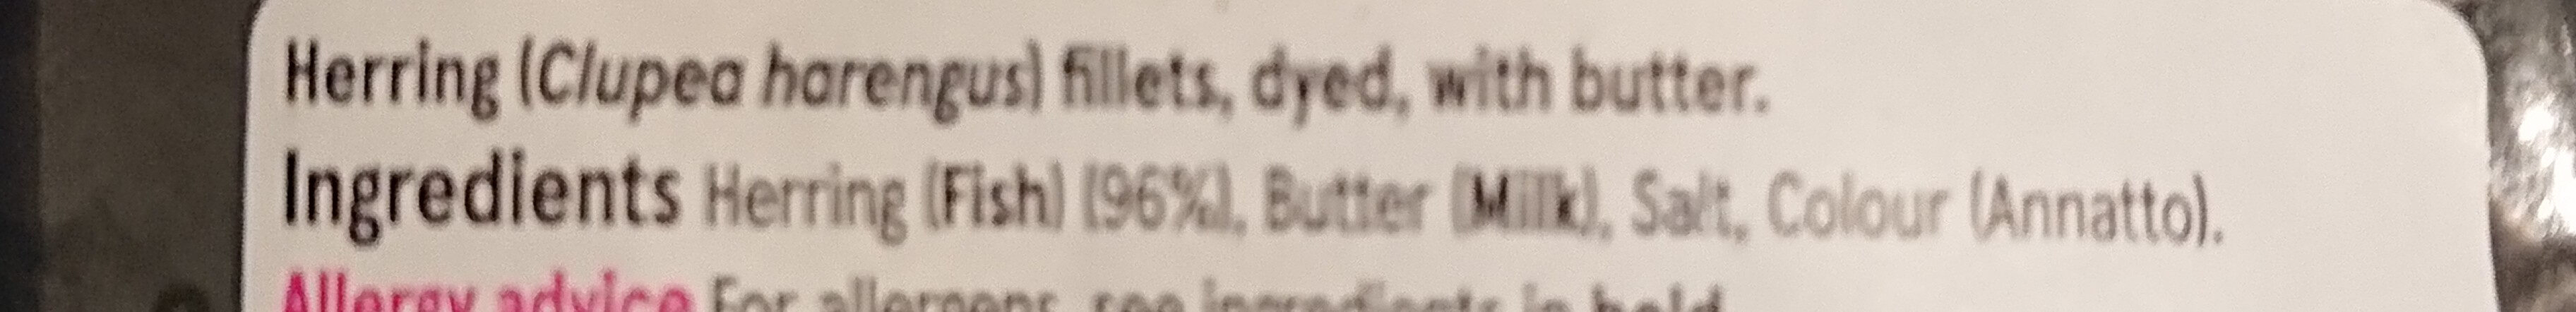 Kipper Fillets with Butter - Ingredients